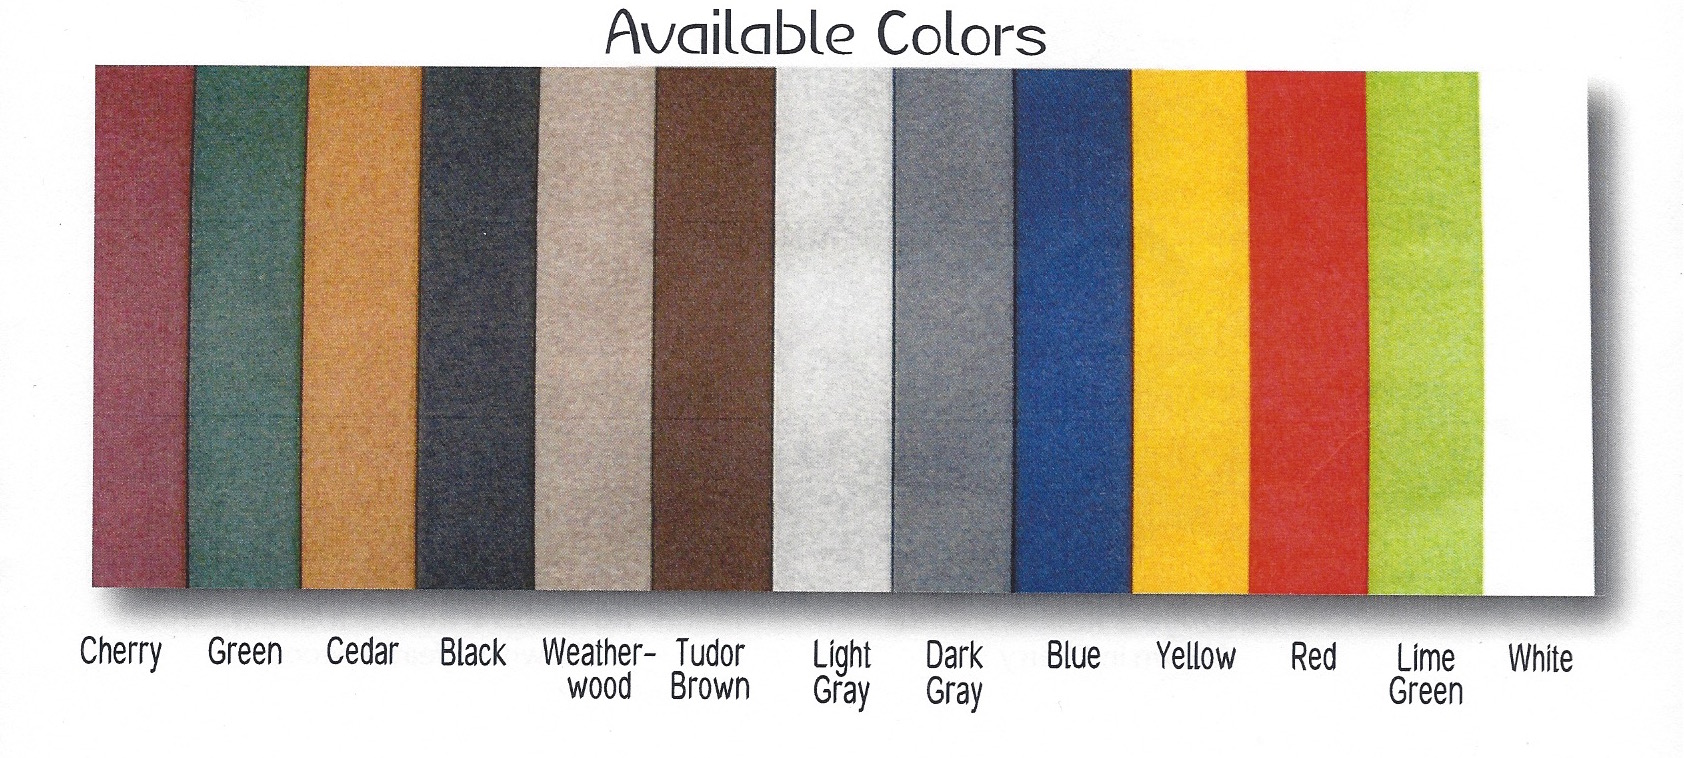 Choose From Any Of These Colors - Either One Solid Color or Two Tone - All At The Same Cost!